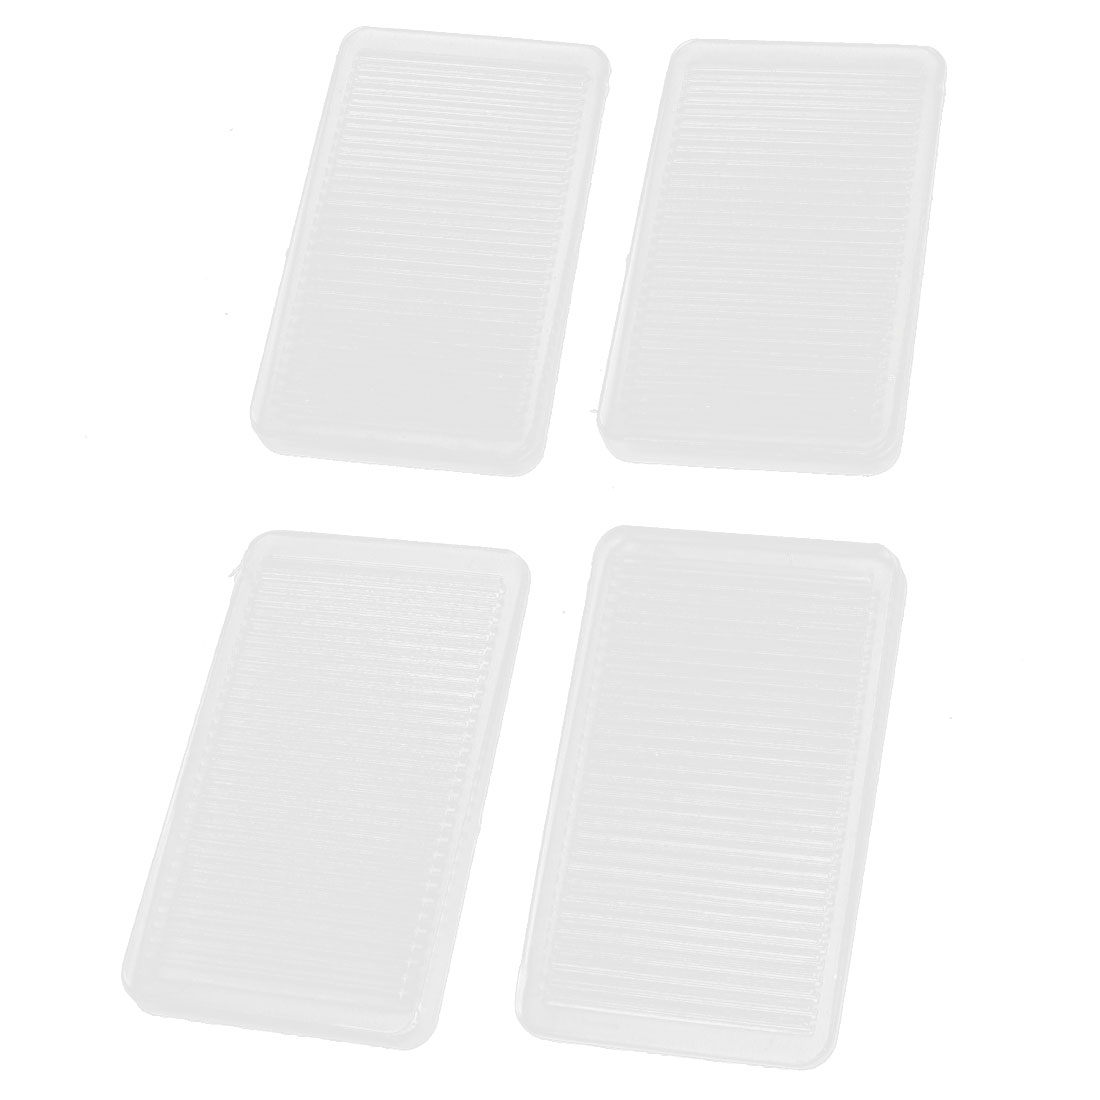 4 Pcs Clear Soft Rubber Anti Skid Slip Pad for Furniture Table Chair